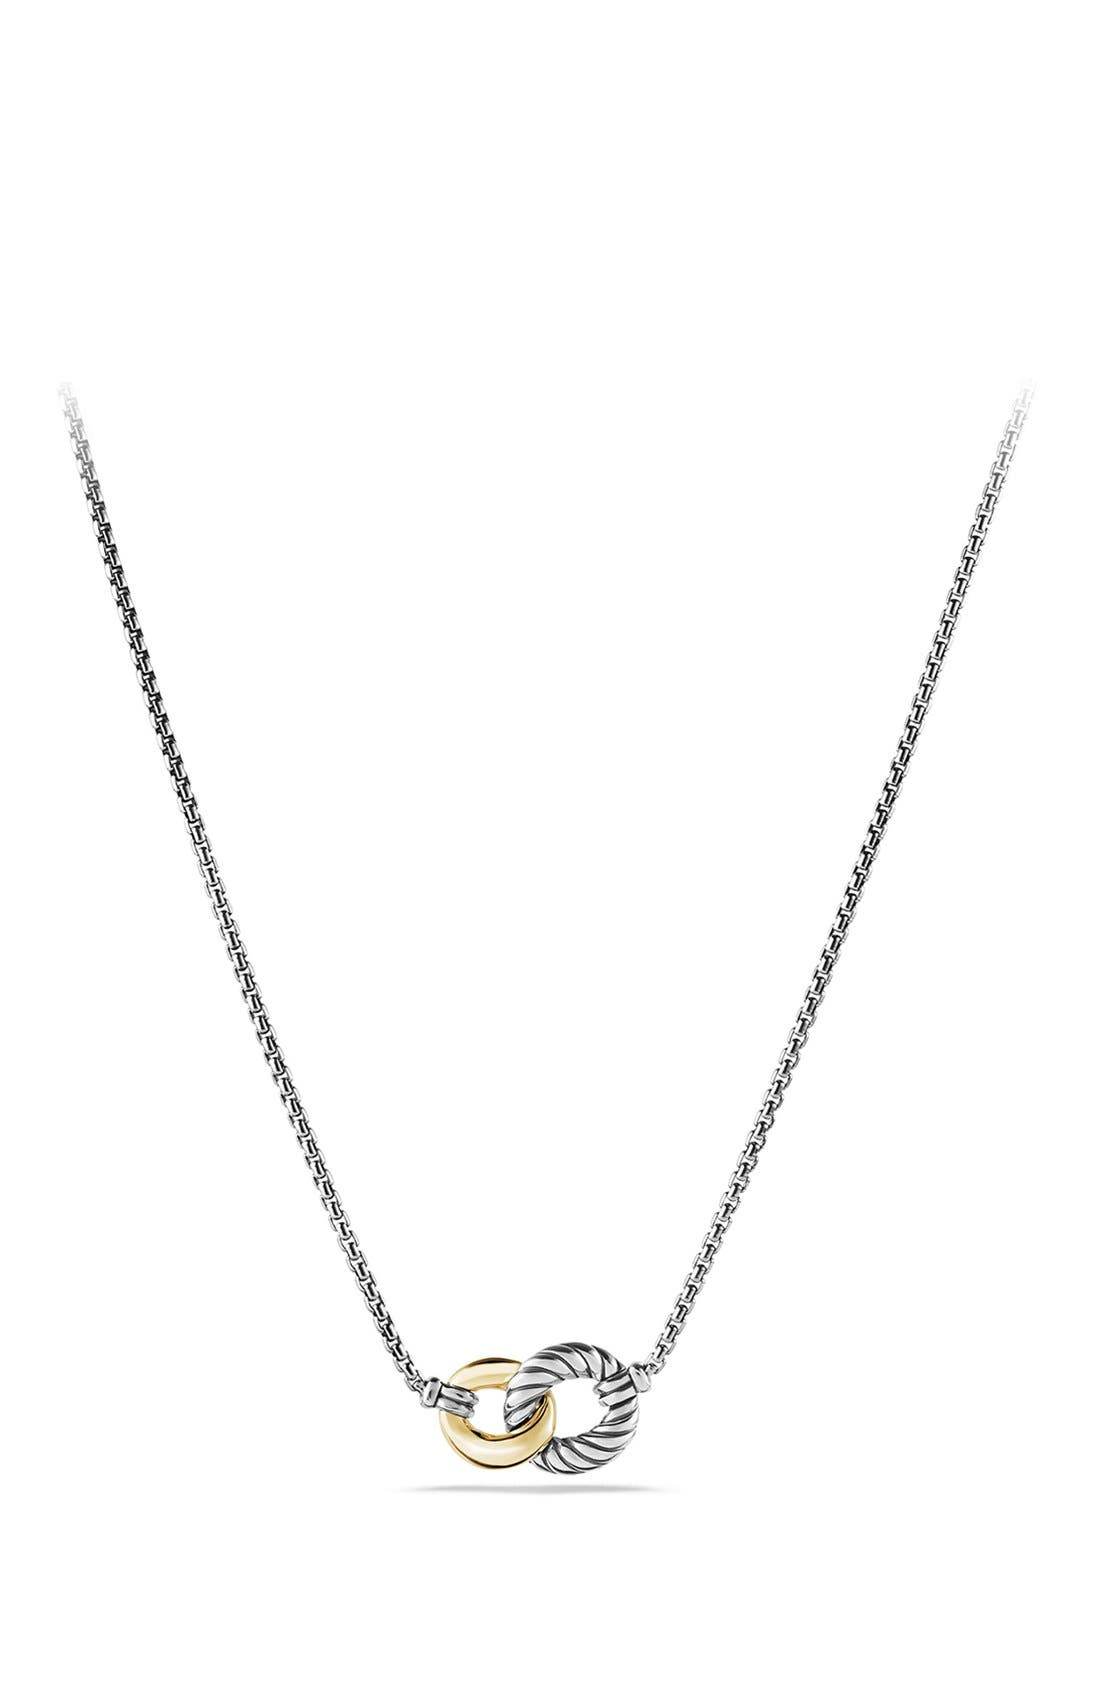 david yurman 39 belmont 39 curb link necklace with 18k gold